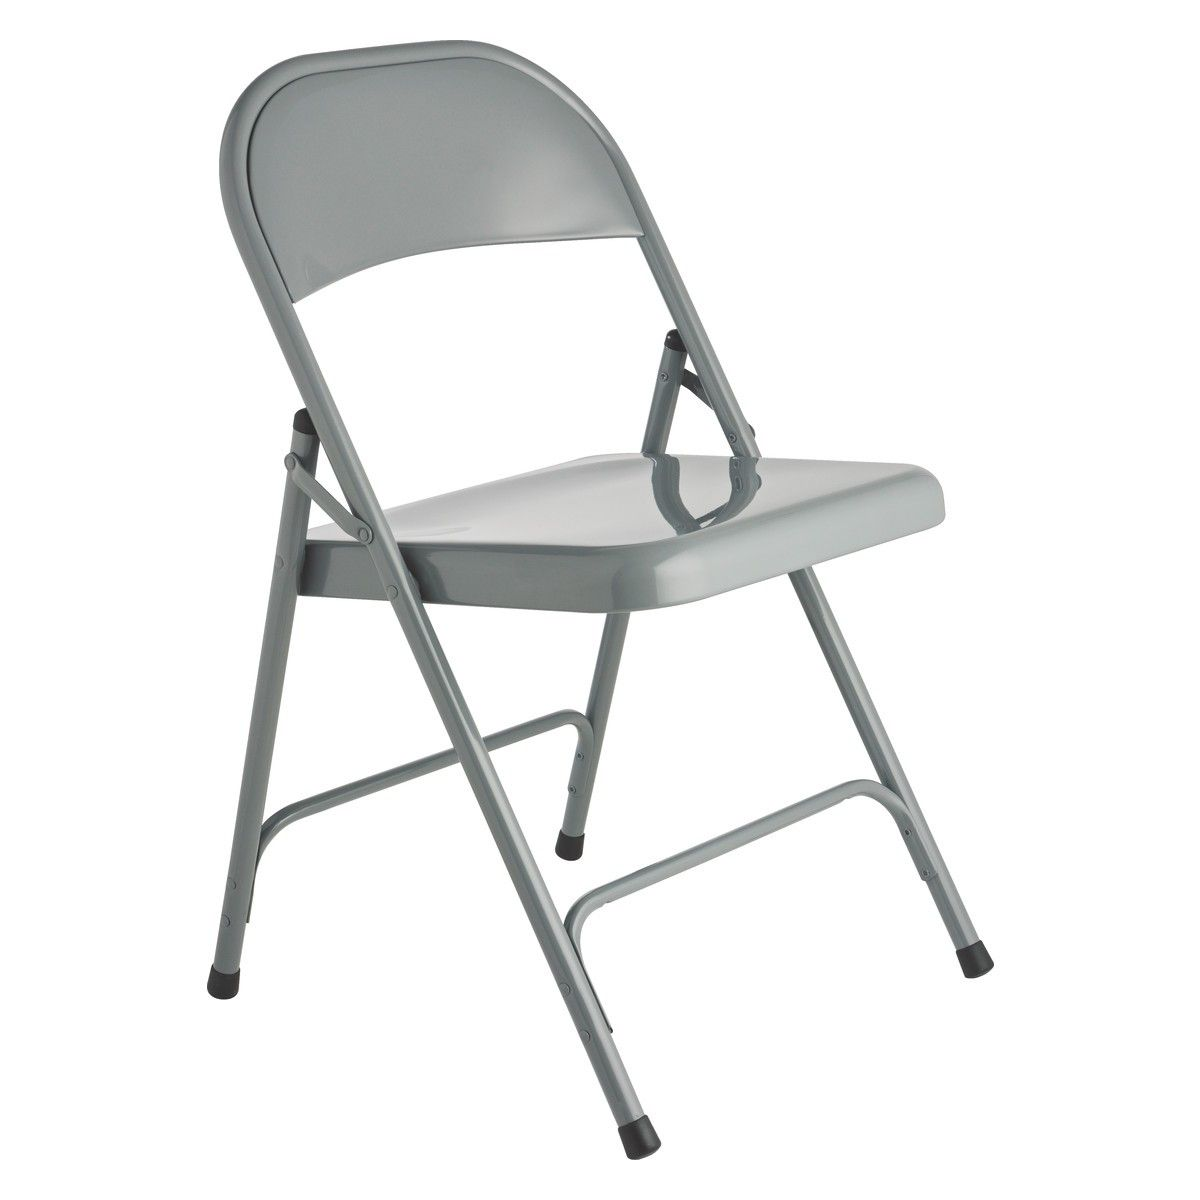 The Macadam Green Metal Folding Chair Is Versatile And Great For Dining And  Occasional Use. Buy Now At Habitat UK.